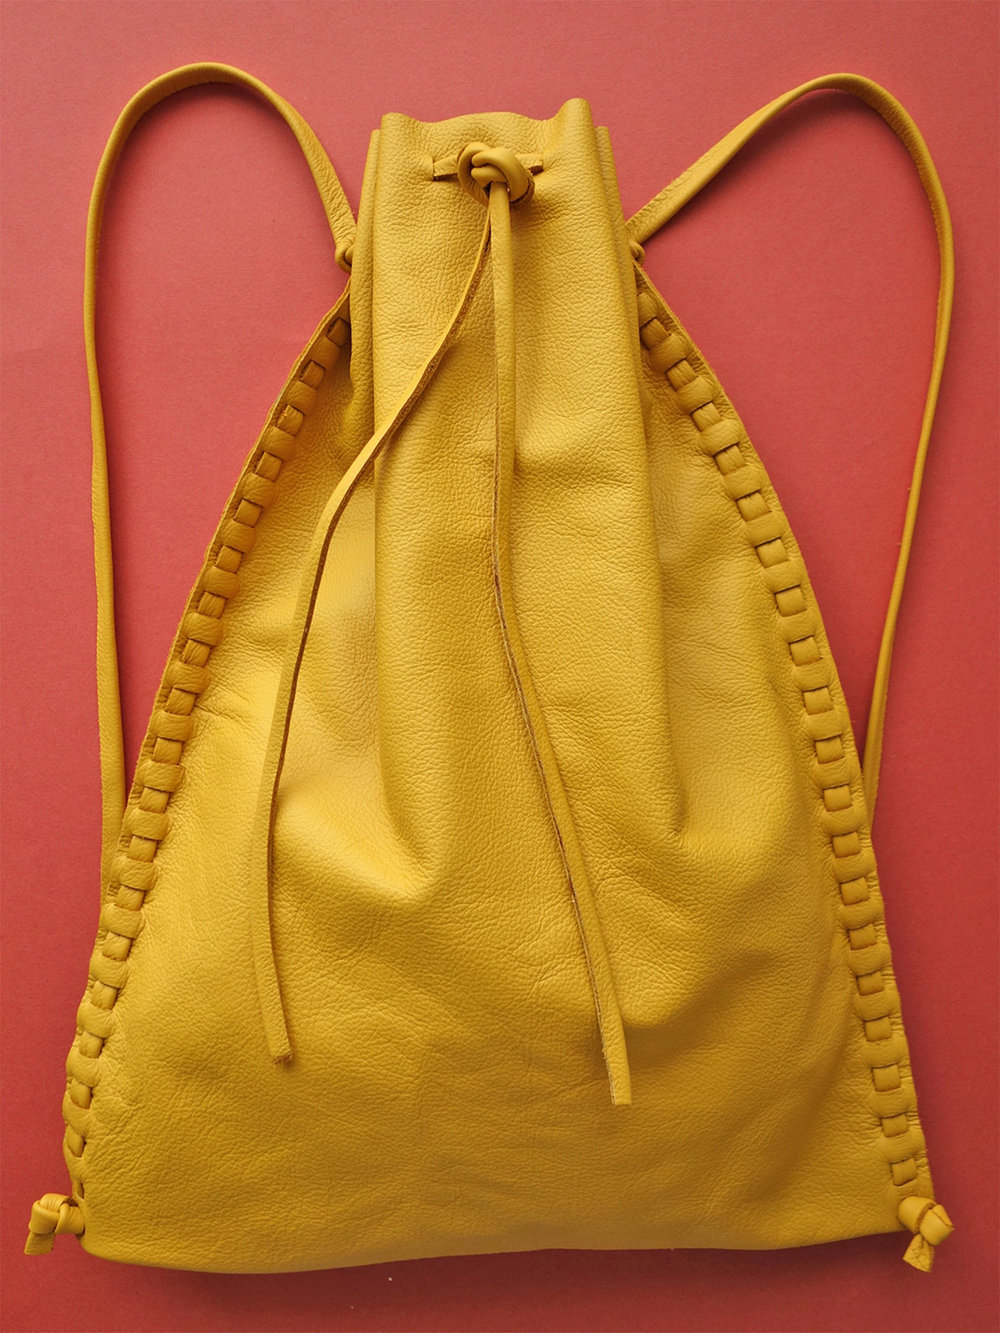 Liodebruin_Leather_Drawstringbag_04.jpg